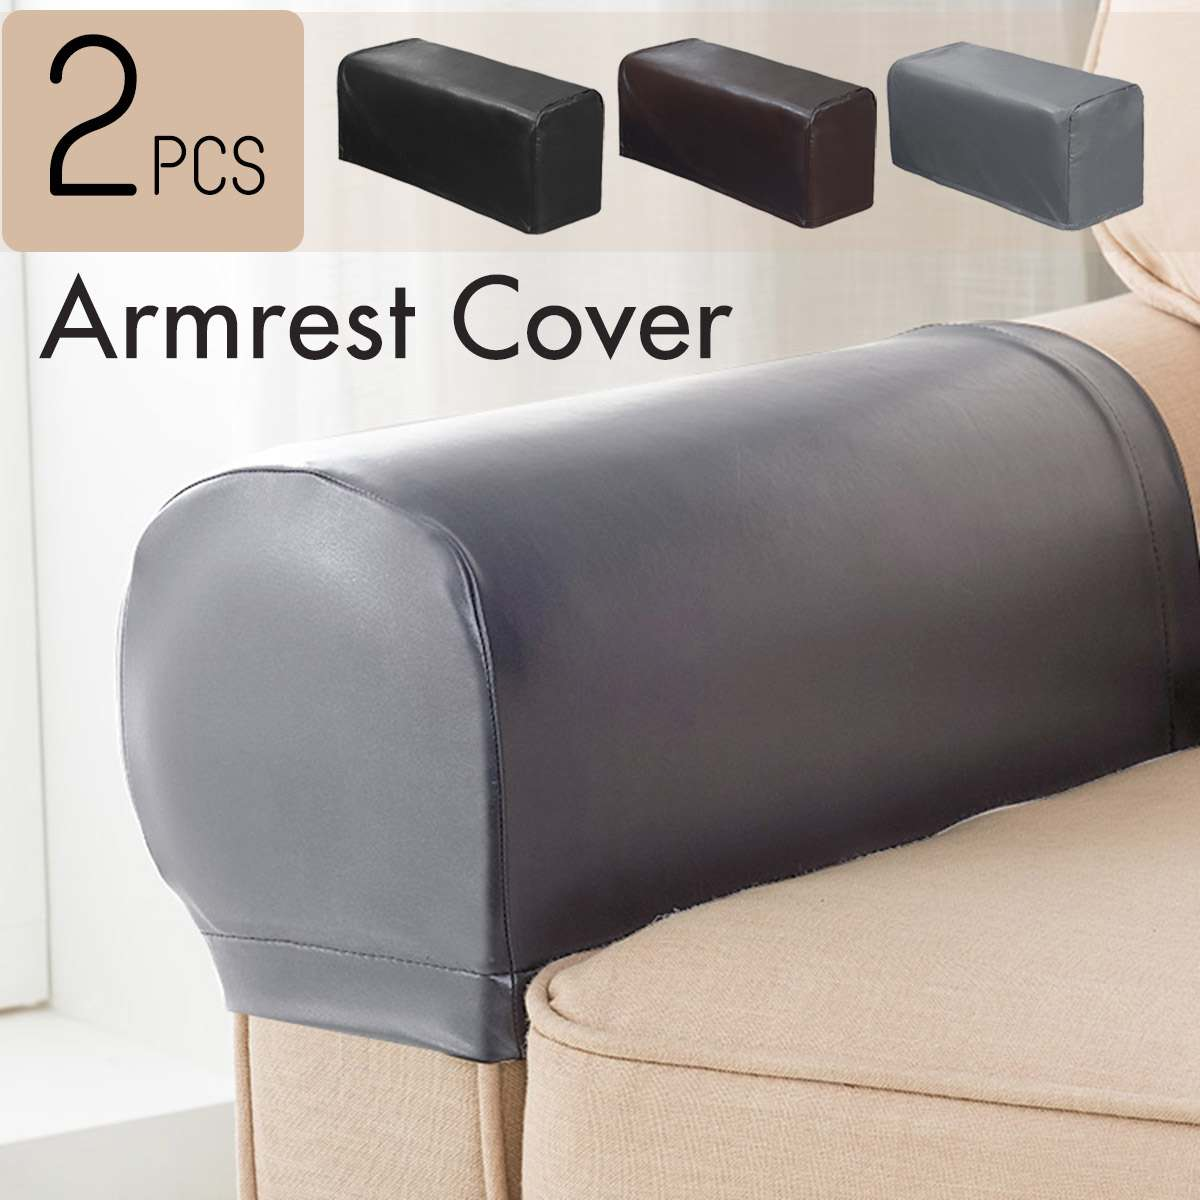 Us 8 49 15 Off Elastic 2pc Set Pu Leather Sofa Covers Waterproof Sofa Armrest Covers For Couch Chair Arm Protectors Slipcover Stretchy In Sofa Cover